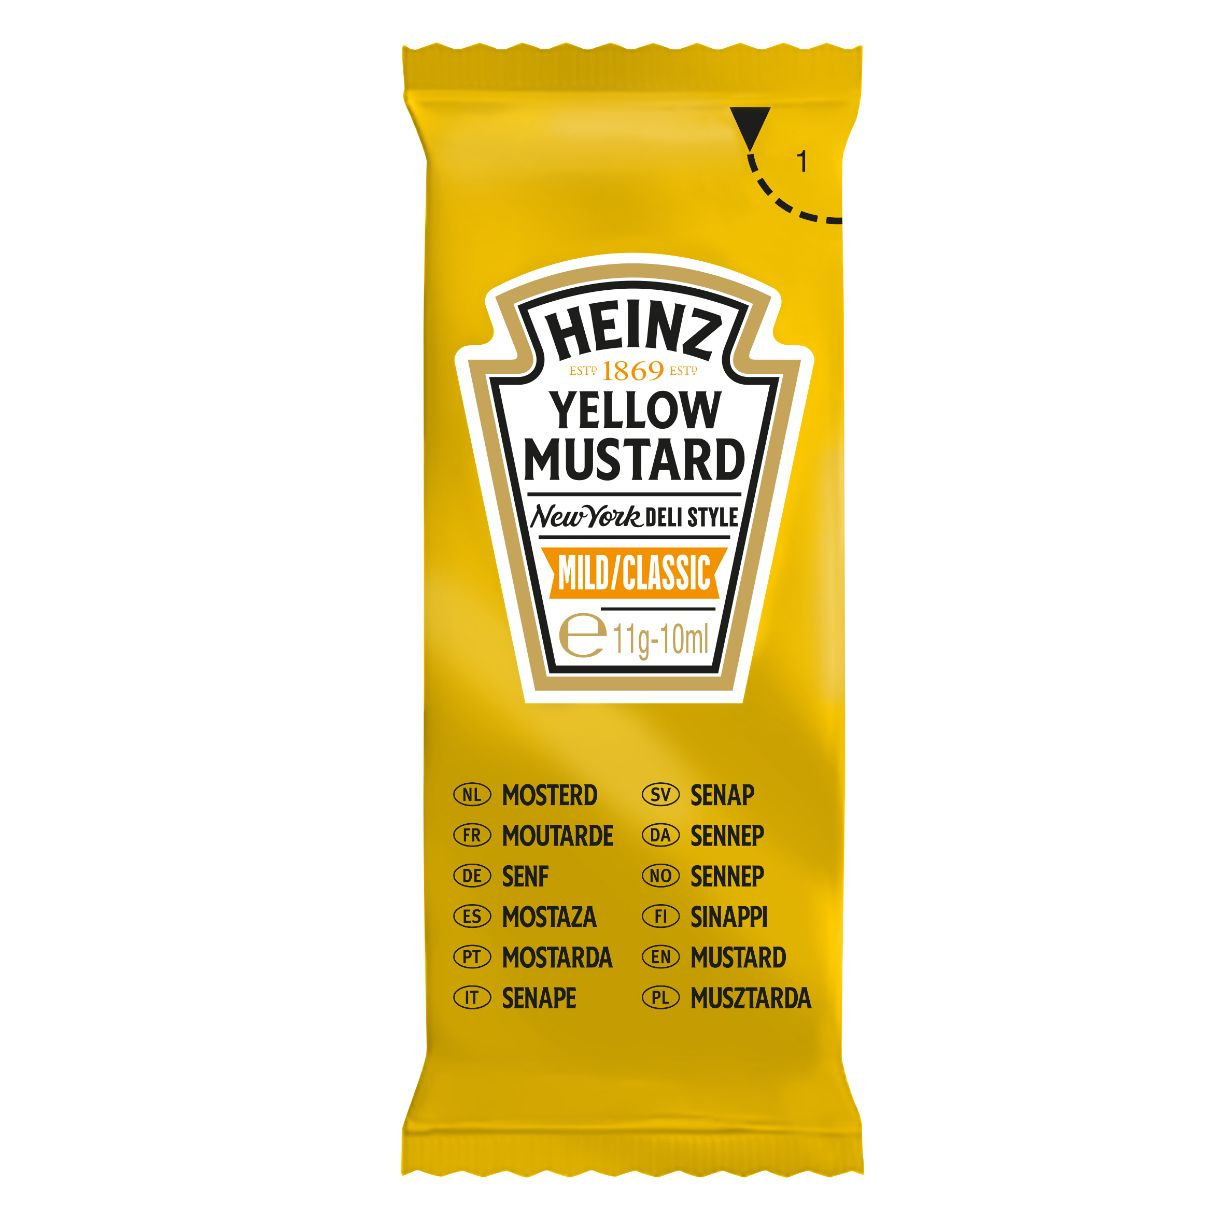 Heinz Yellow mustard 10ml image